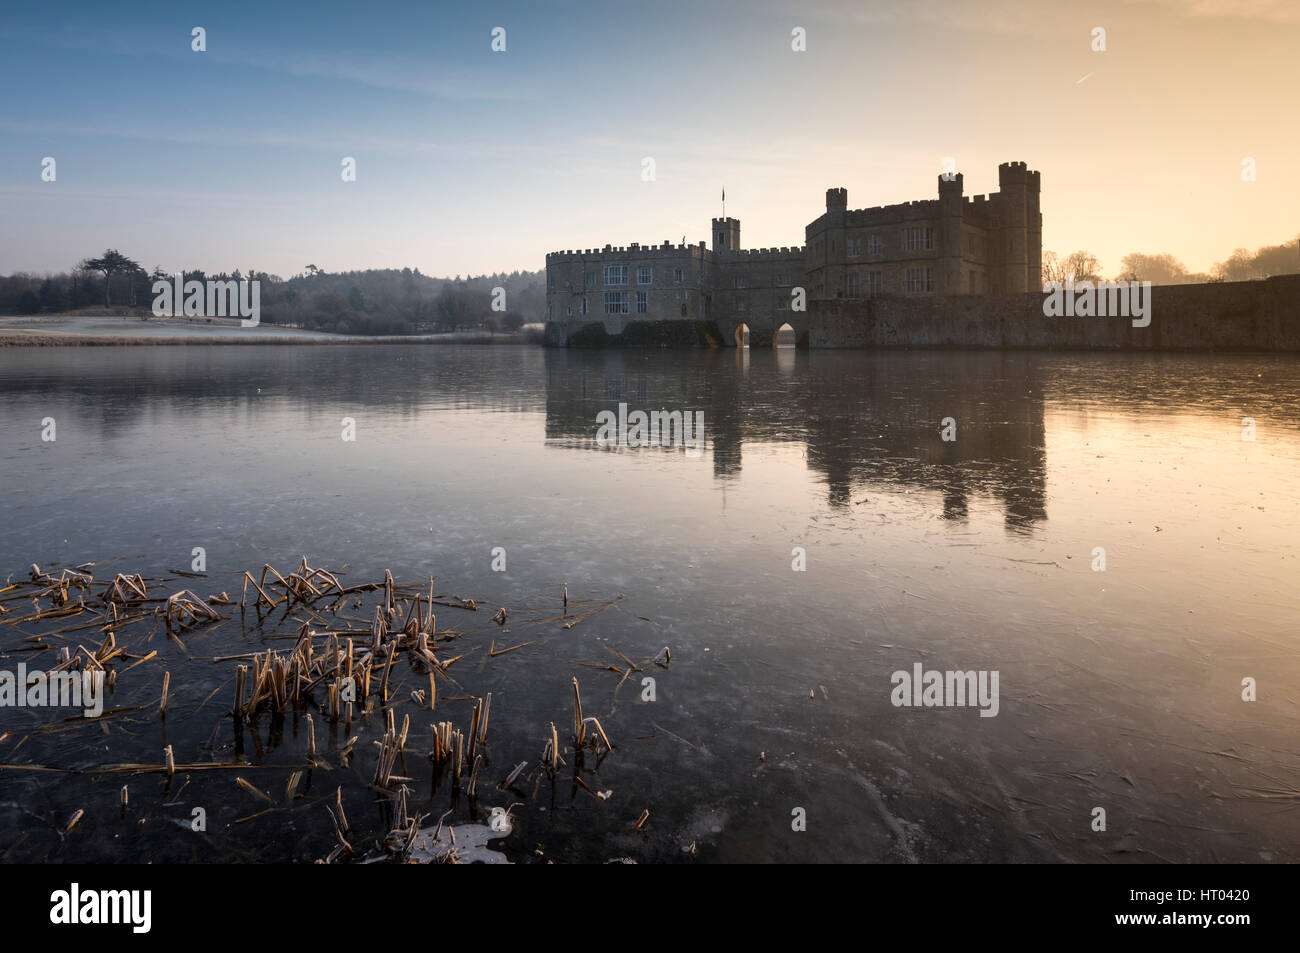 A Winter's morning at Leeds Castle, Kent. Stock Photo